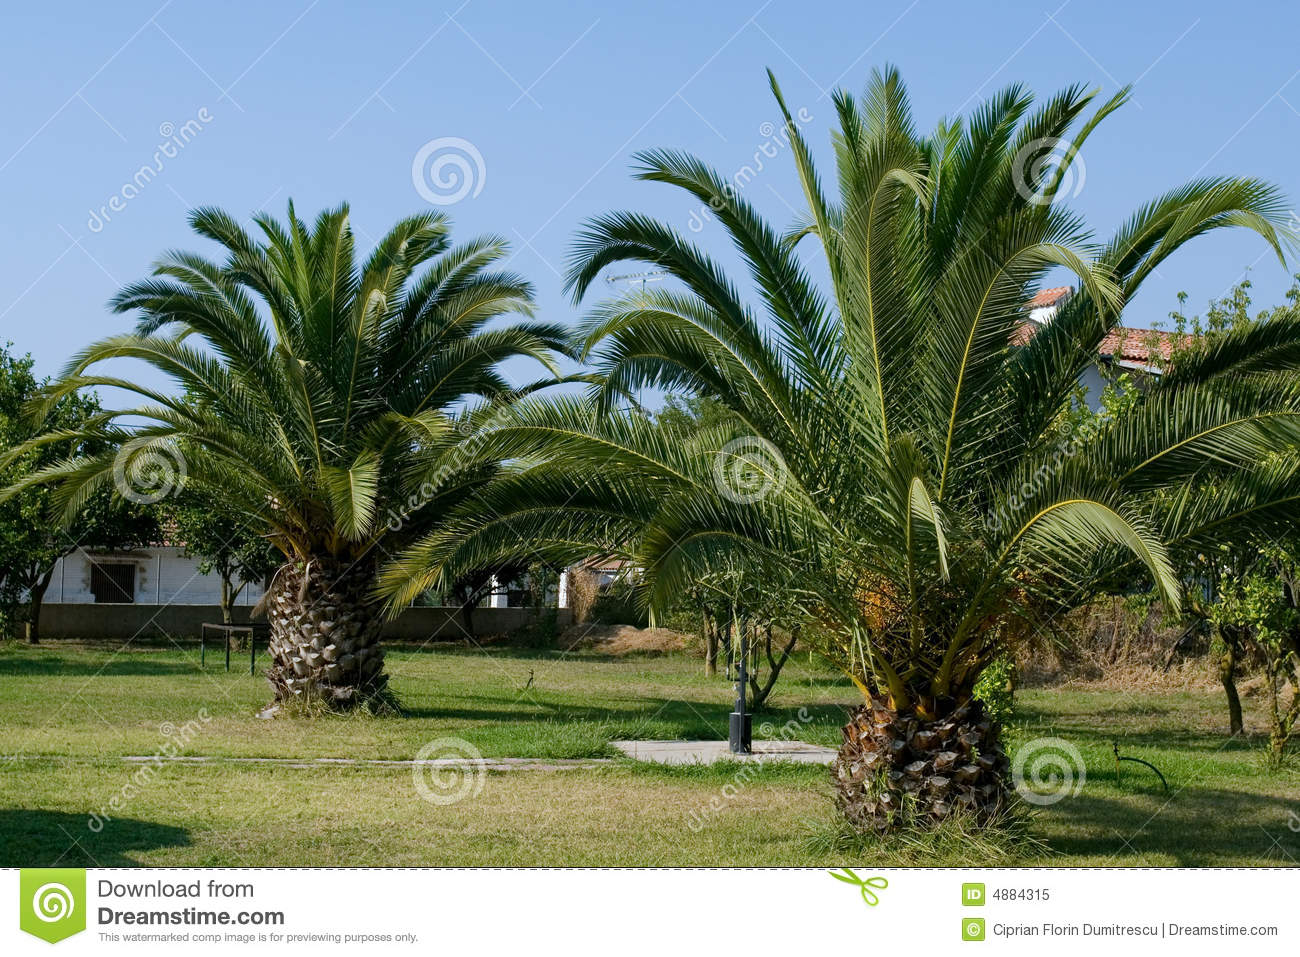 Jardin de palmier photo libre de droits image 4884315 for Decoration jardin avec palmier